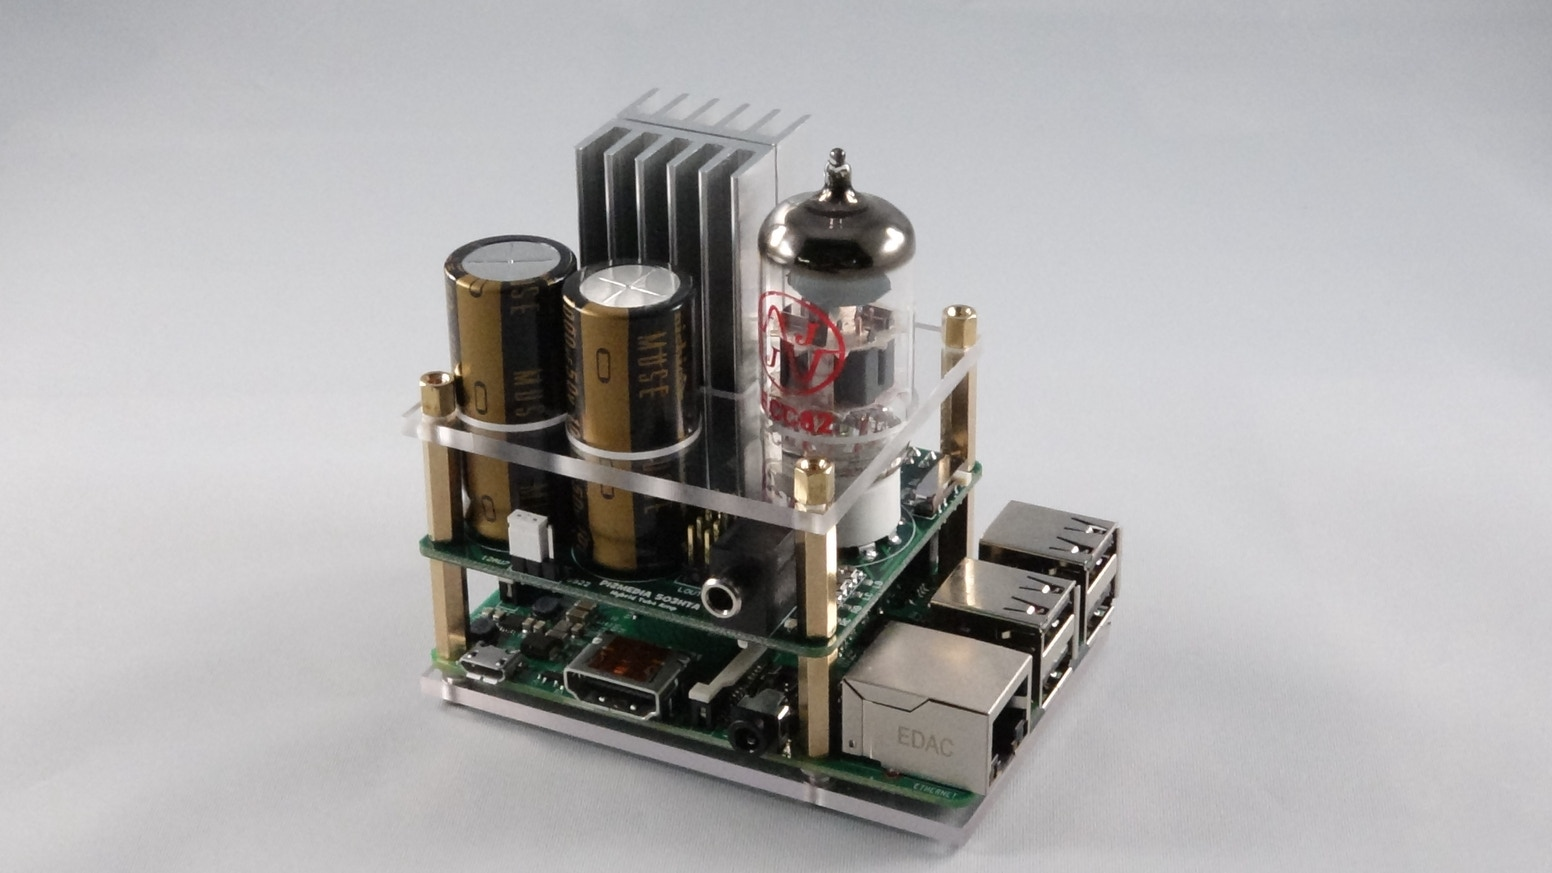 Hybrid Tube Amp For The Raspberry Pi By 2 Design Kickstarter Ecc88 Based Hampton Preamplifier